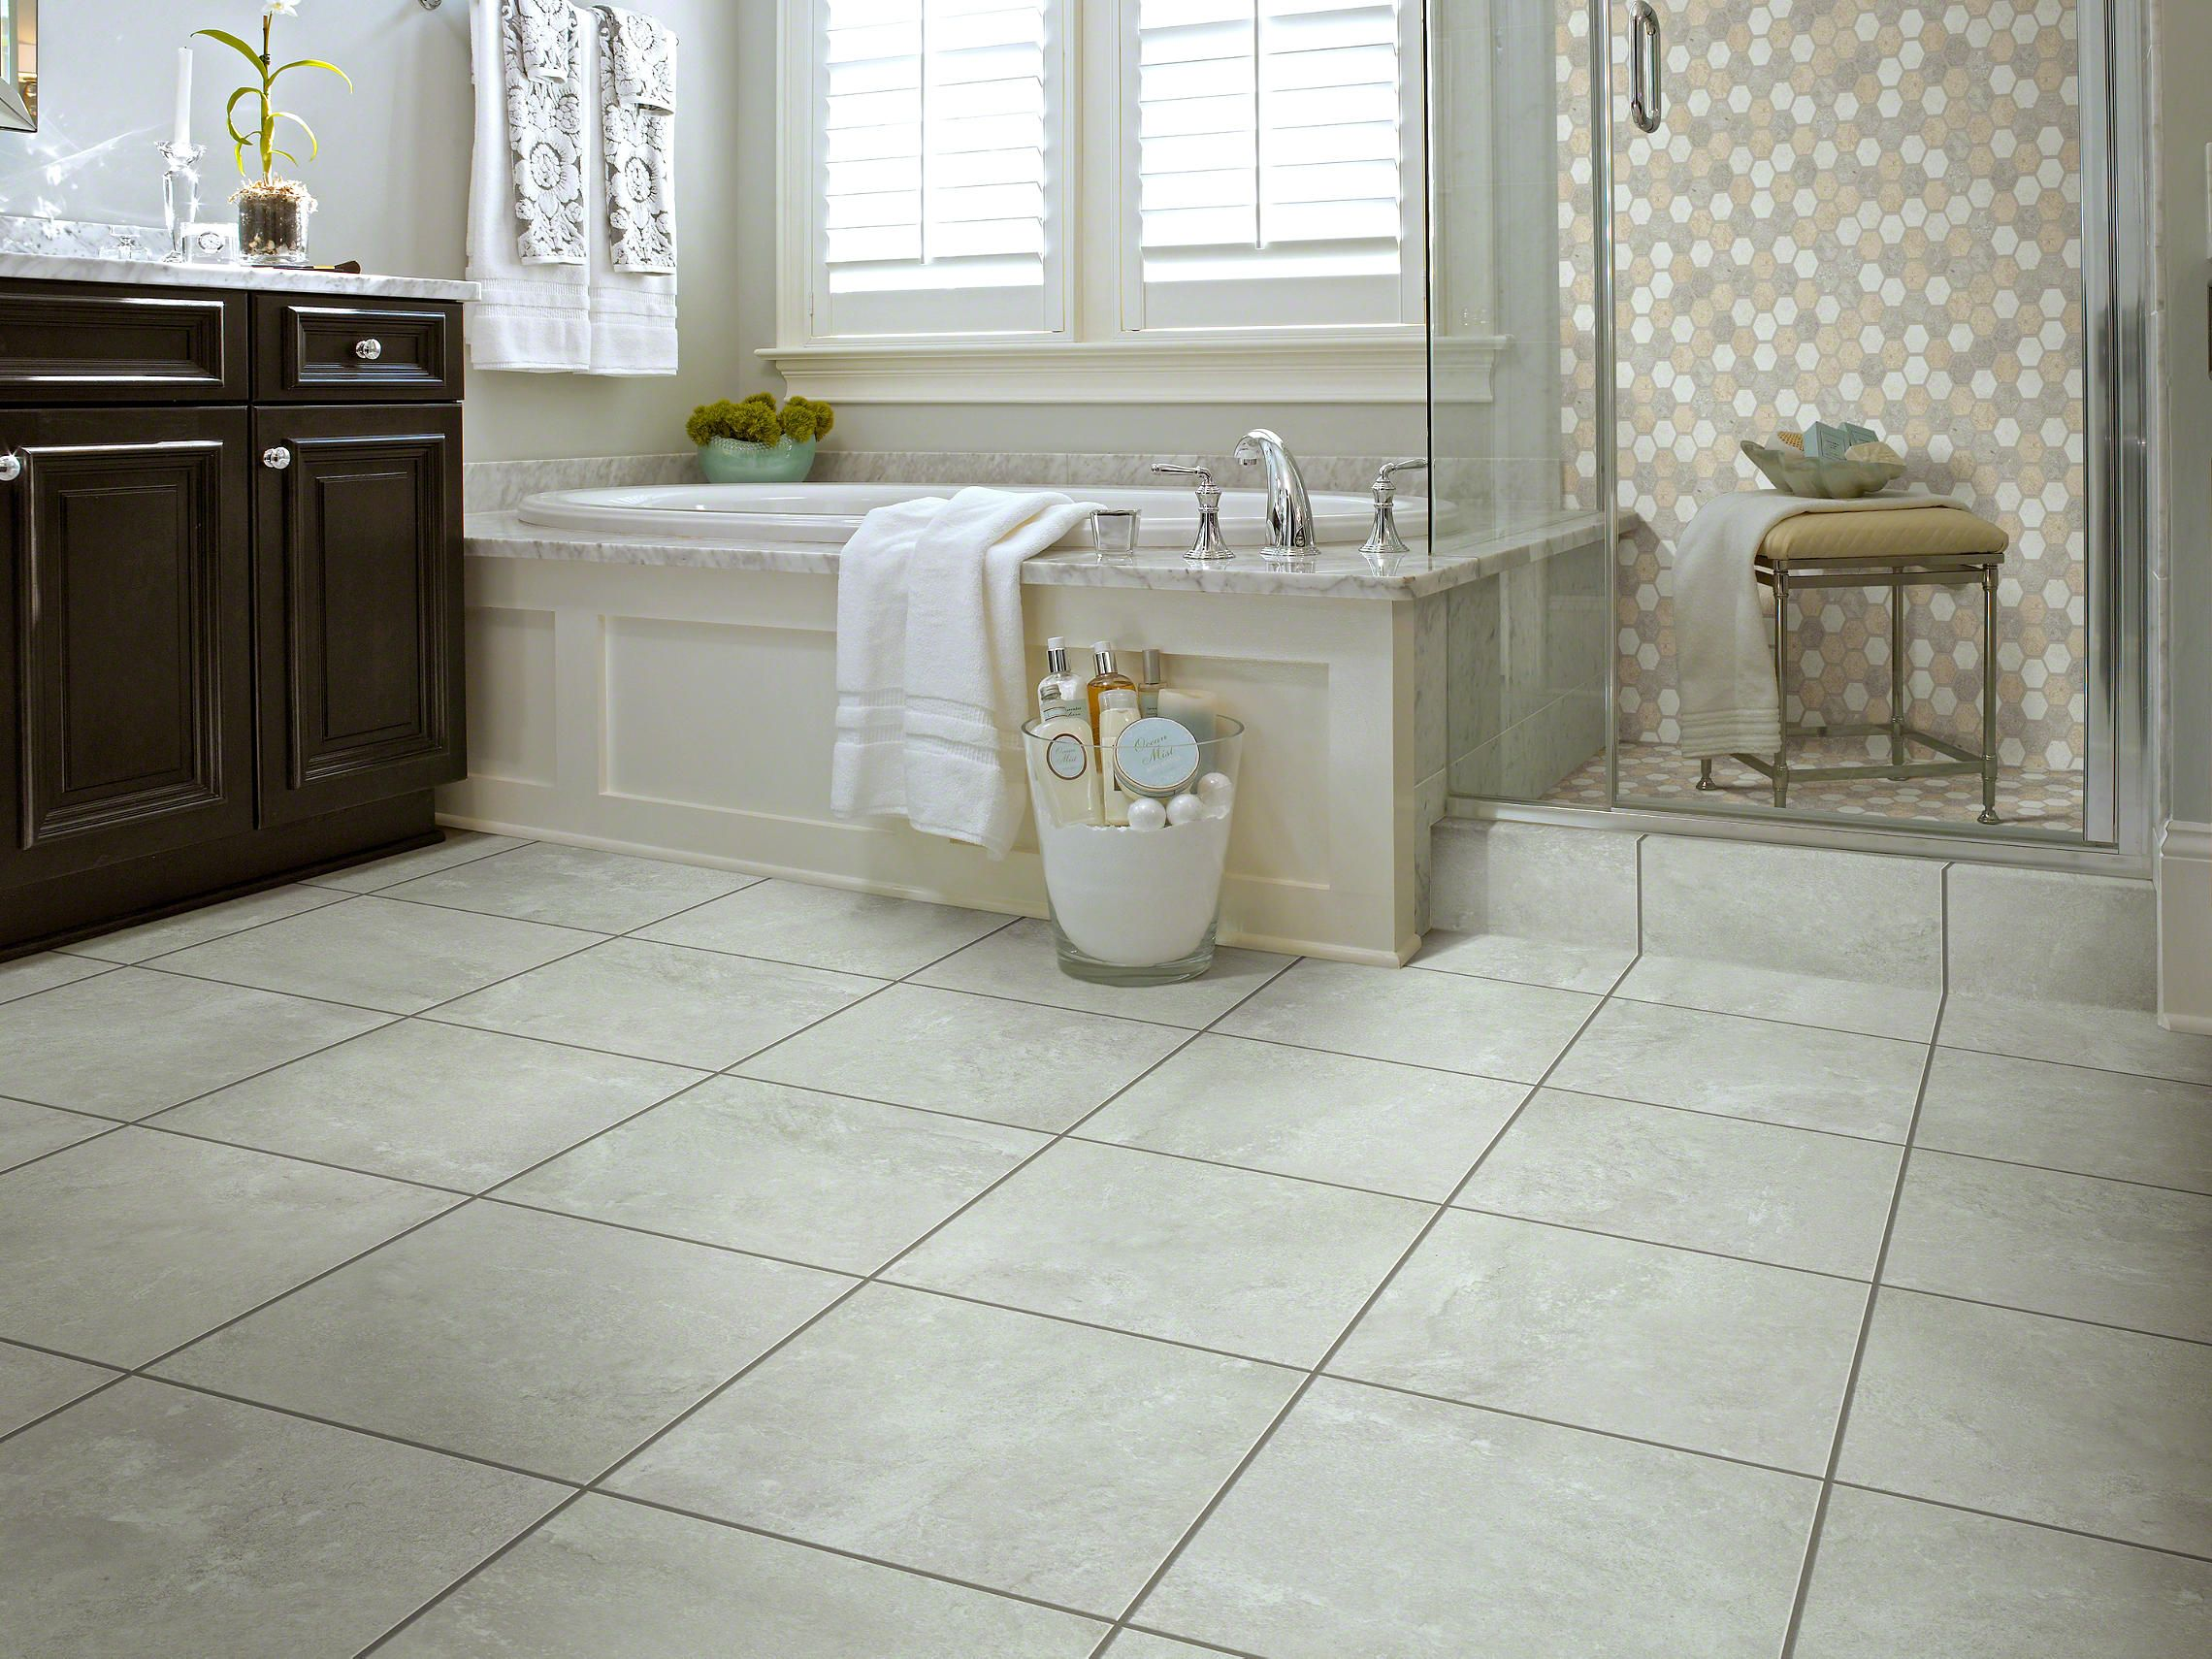 Best Photo Gallery For Website Shaw us resort tile macadamia resilient vinyl flooring is the modern choice for beautiful u durable floors Wide variety of patterns u colors